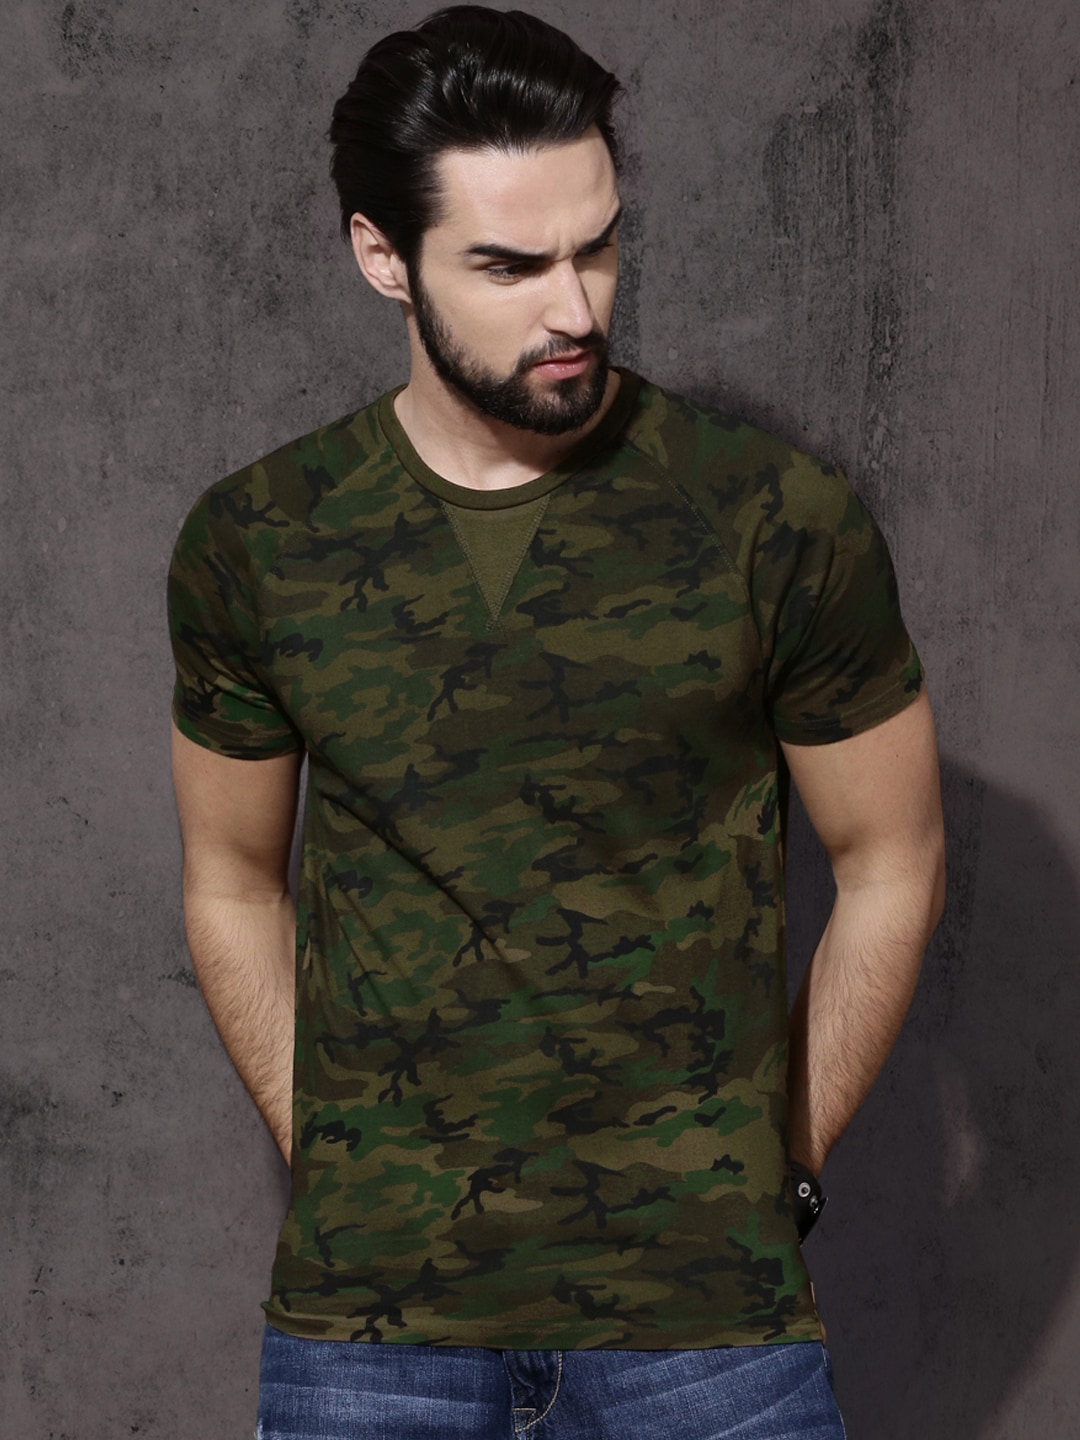 Military Tshirts - Buy Military Tshirt Online in India  80e90315562